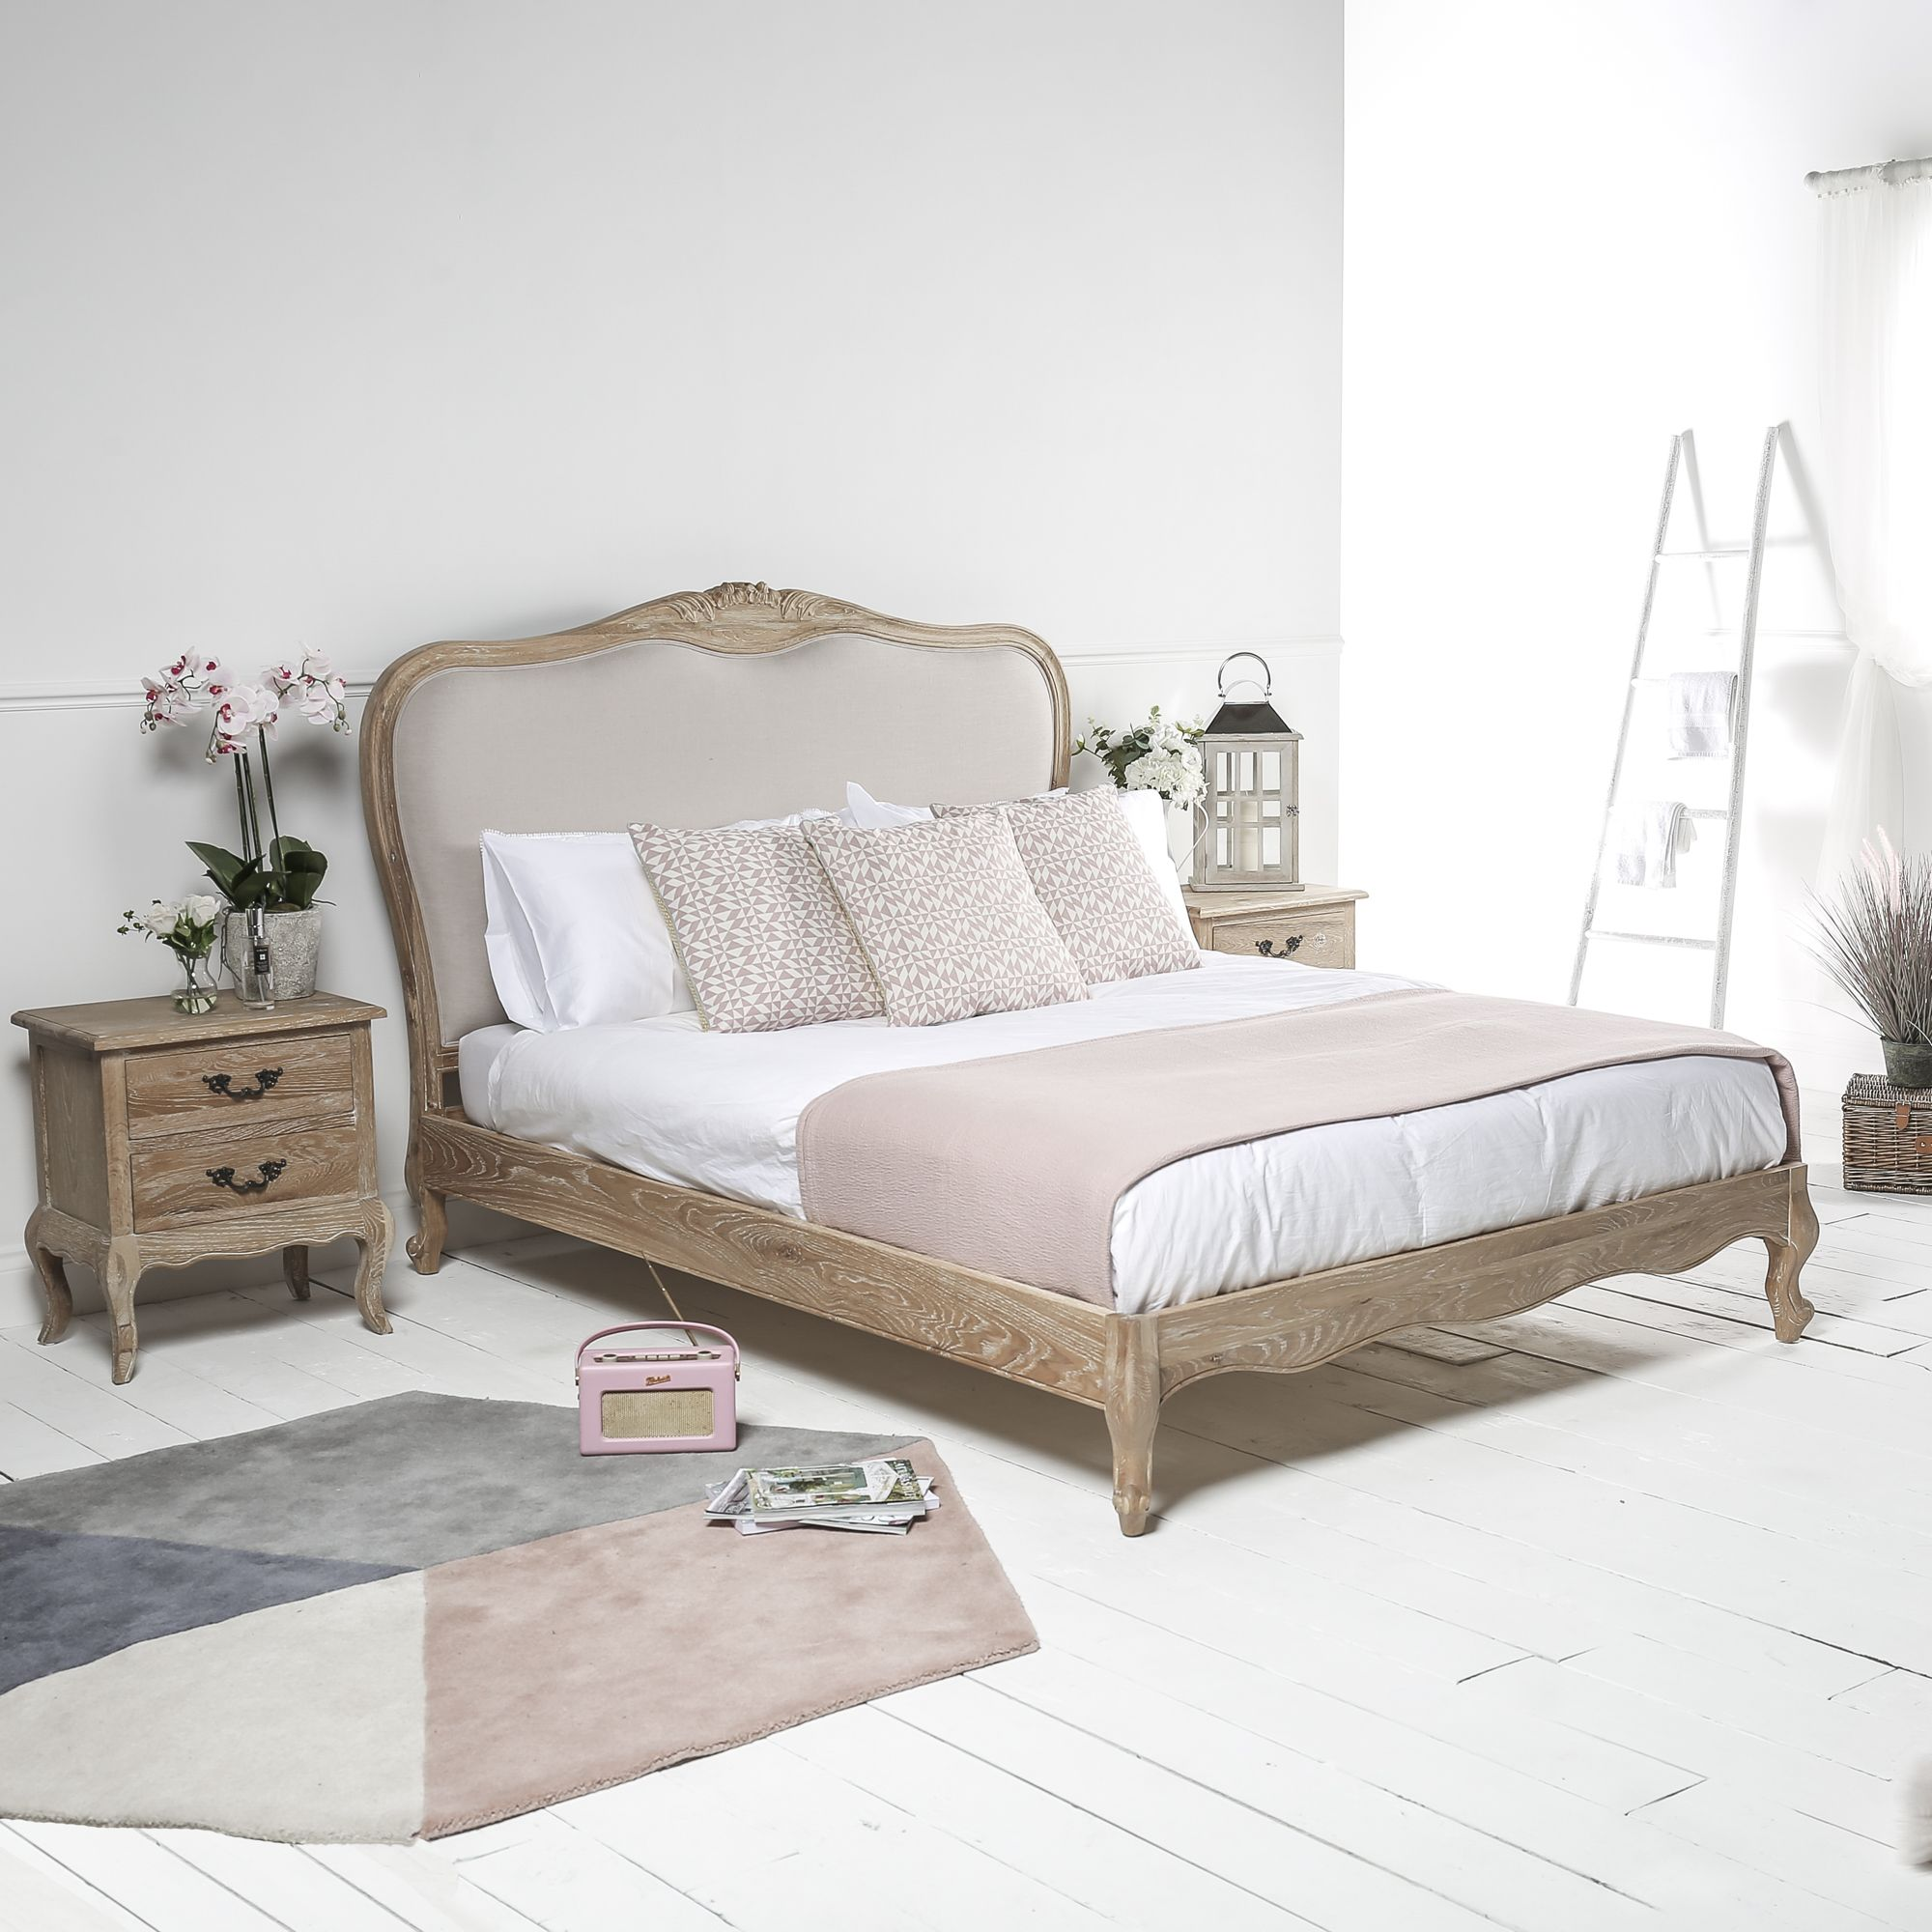 French Weathered Limed Oak Upholstered Low Foot Board Bed King Size Grosvenor Furniture French Style Bed Bed Design Bed